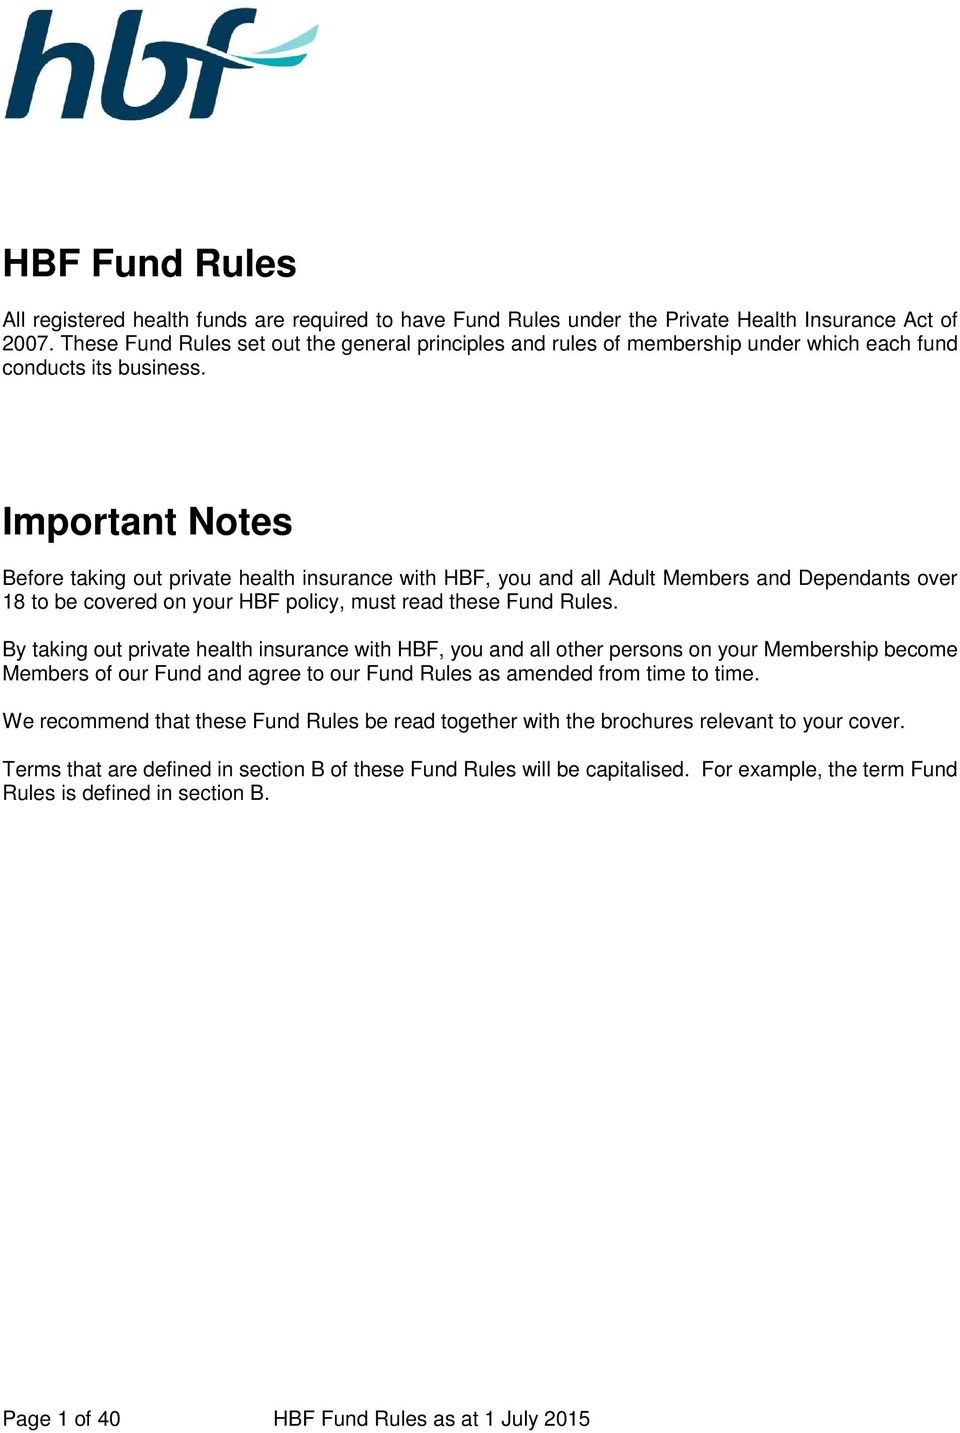 Important Notes Before taking out private health insurance with HBF, you and all Adult Members and Dependants over 18 to be covered on your HBF policy, must read these Fund Rules.